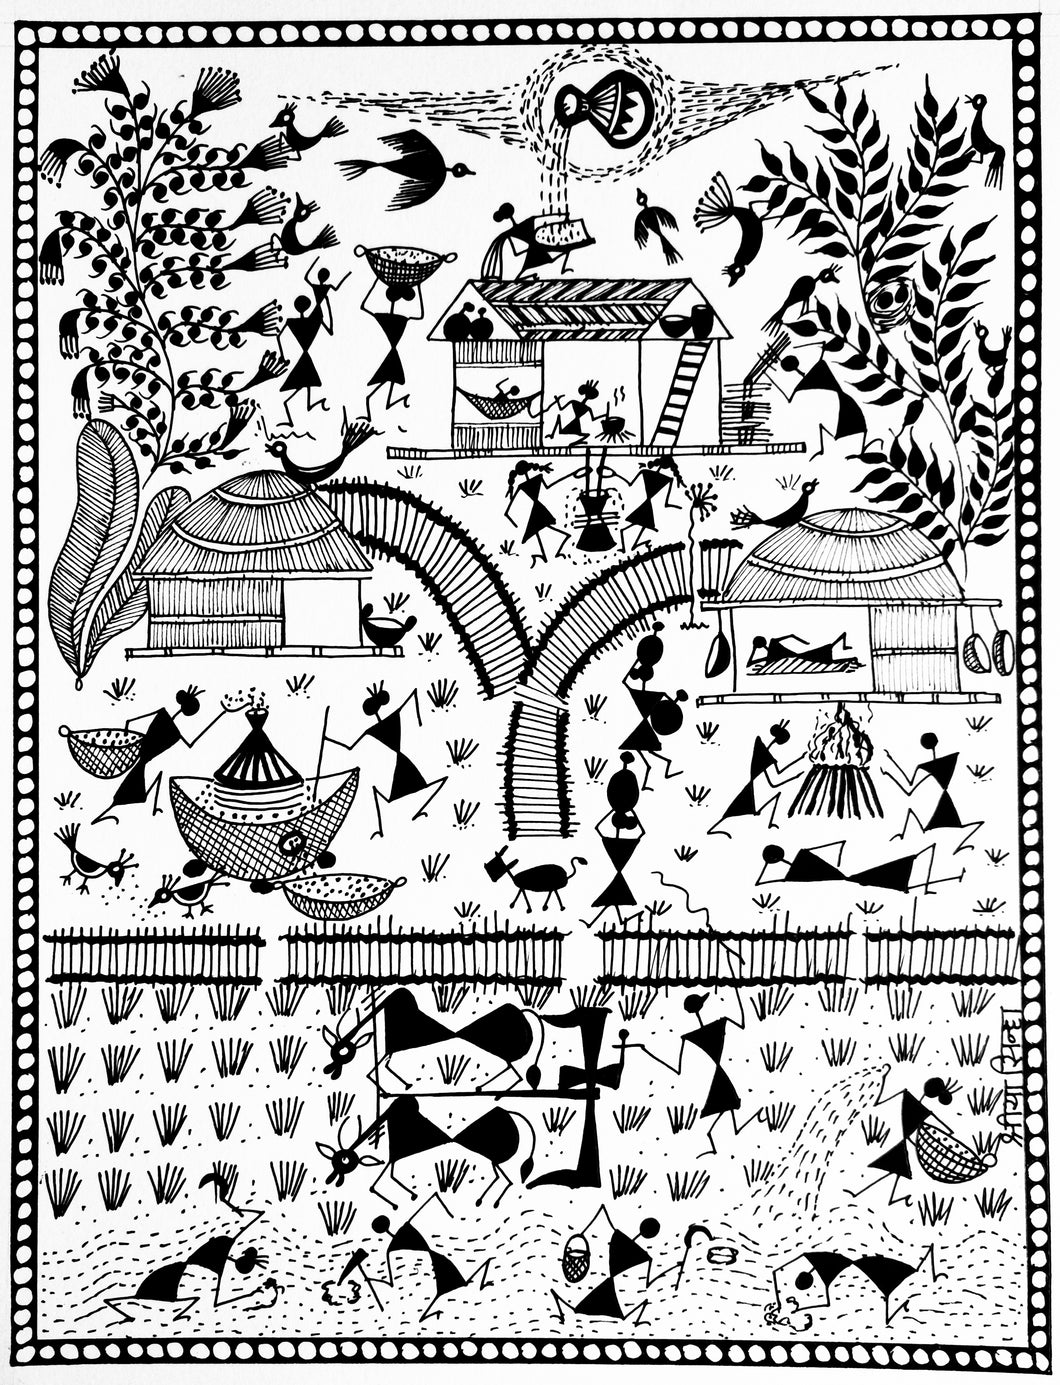 May 9th - Warli (Indian Folk Art) Workshop by Shriya Sinha